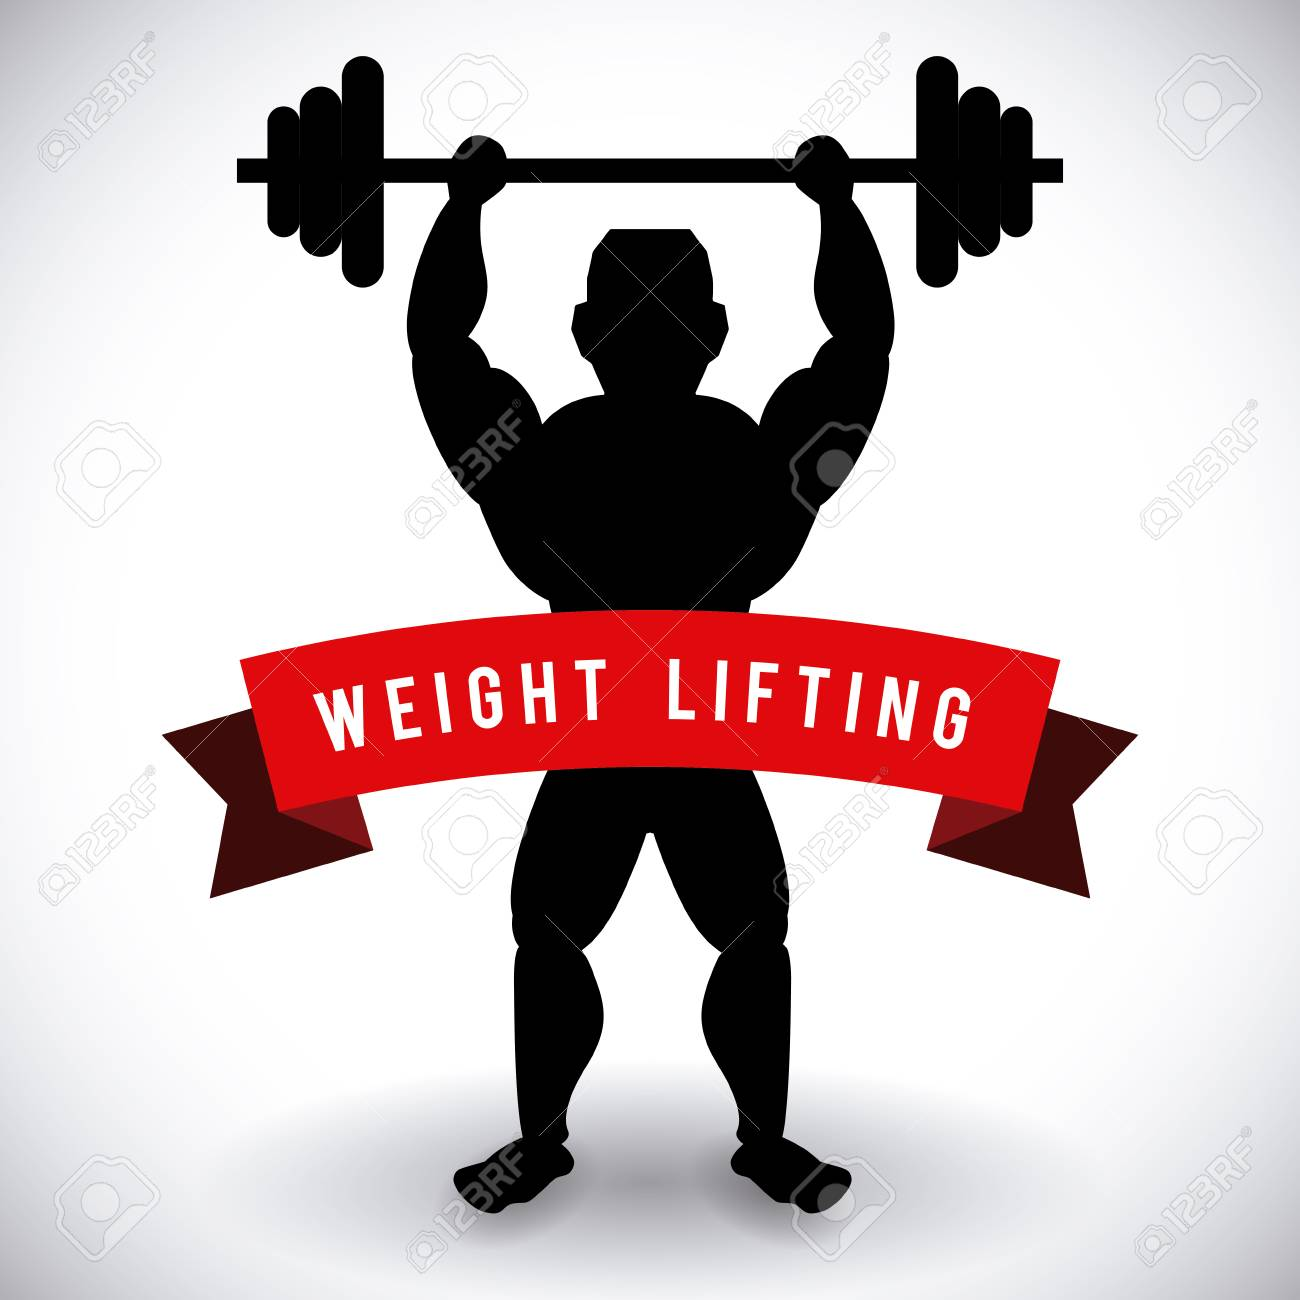 Bodybuilding Graphic Design , Vector Illustration Royalty Free ... for Bodybuilding Graphic Design  45ifm